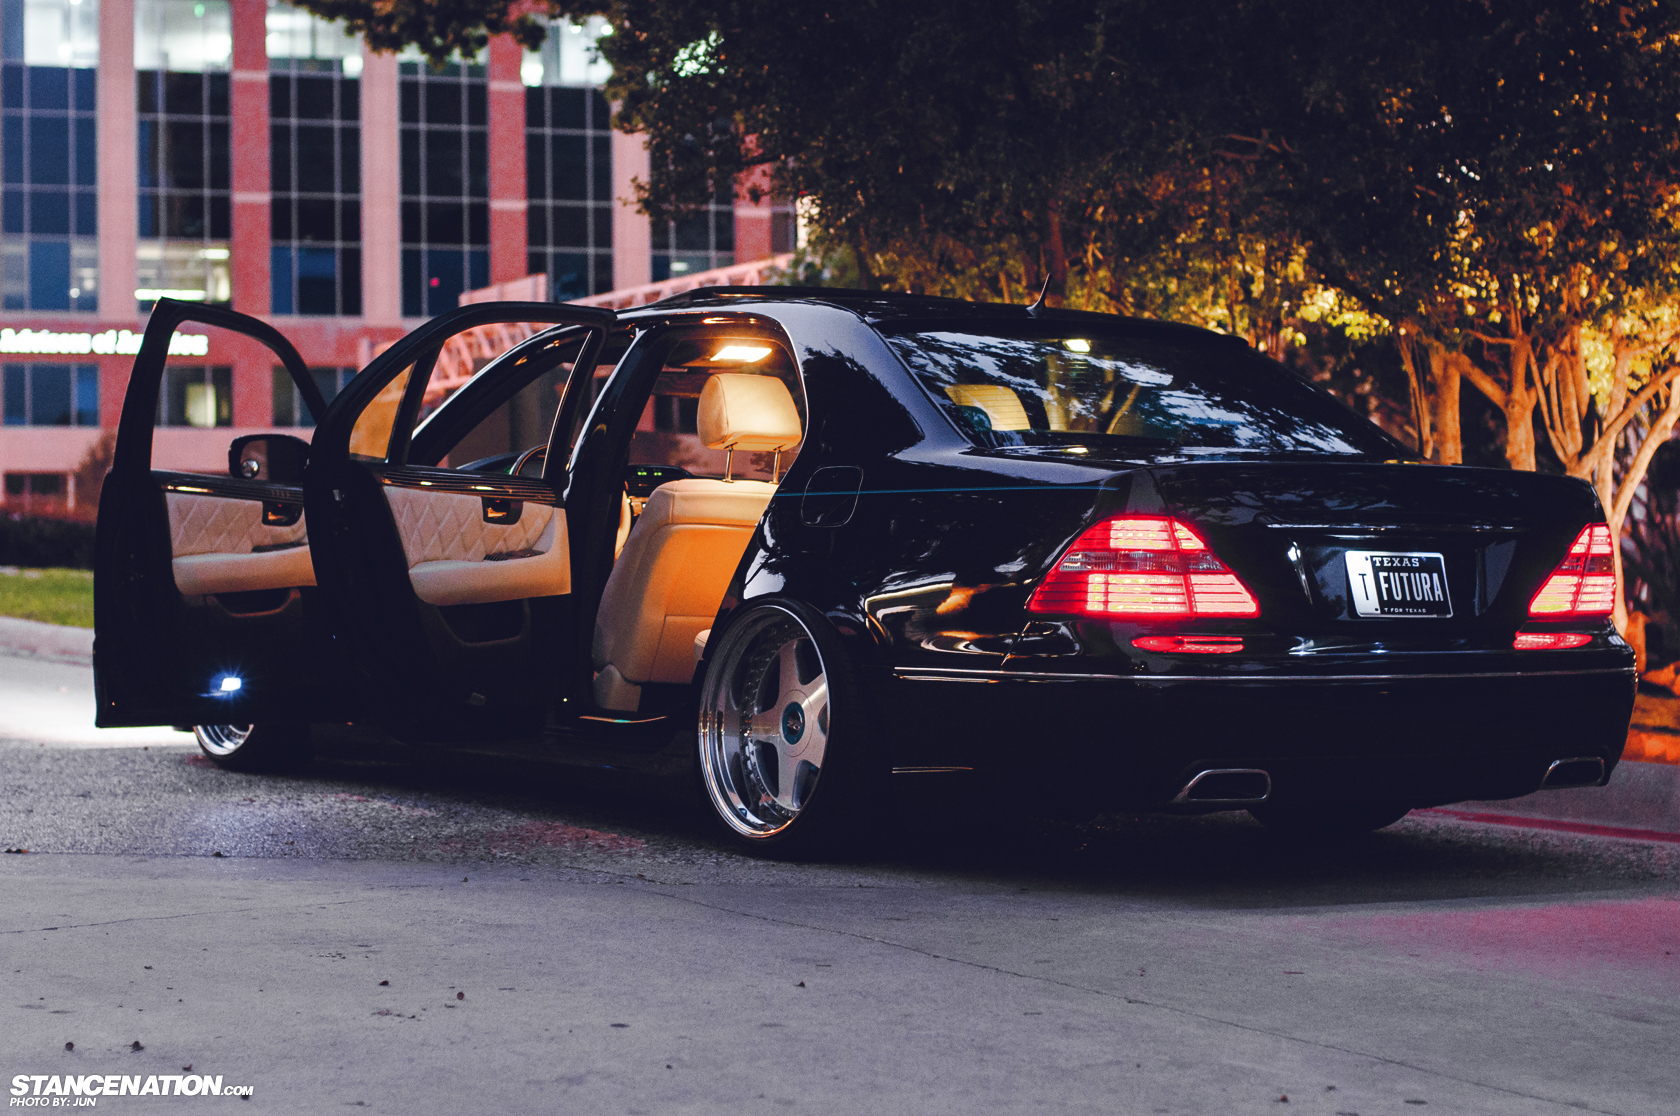 http://www.stancenation.com/wp-content/uploads/2012/11/12.56.jpg